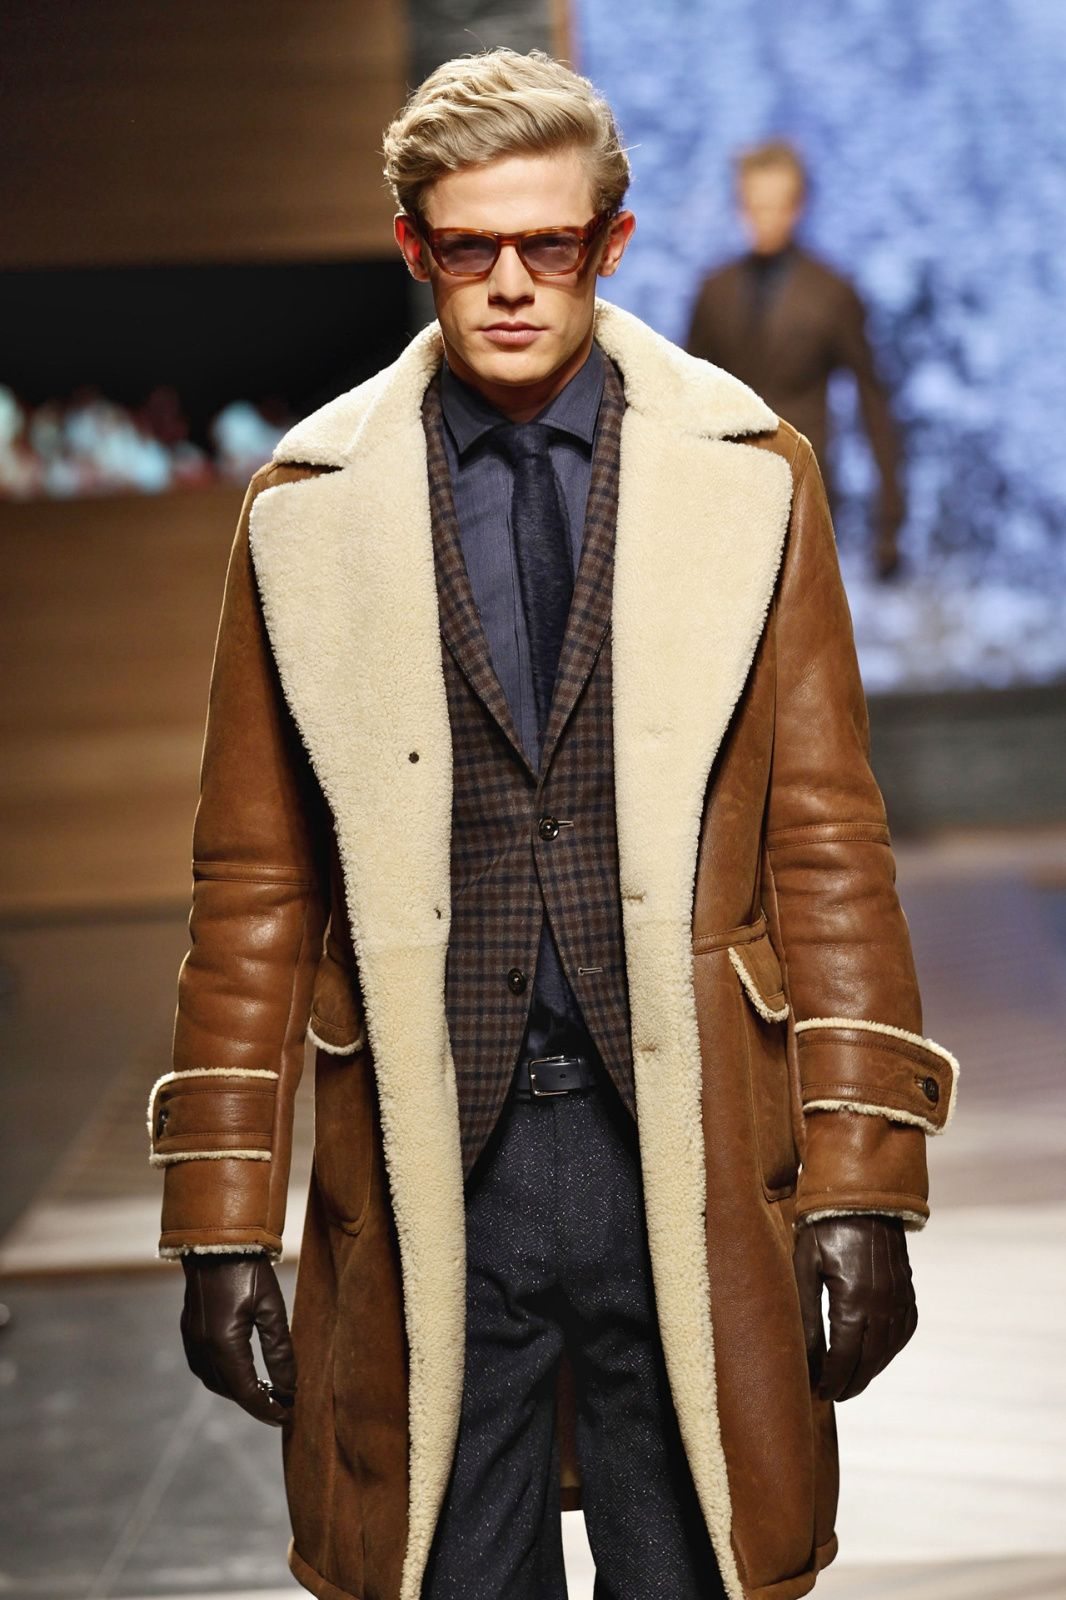 25+ Winter Fashion Trends for Handsome Men in 2017 Grown